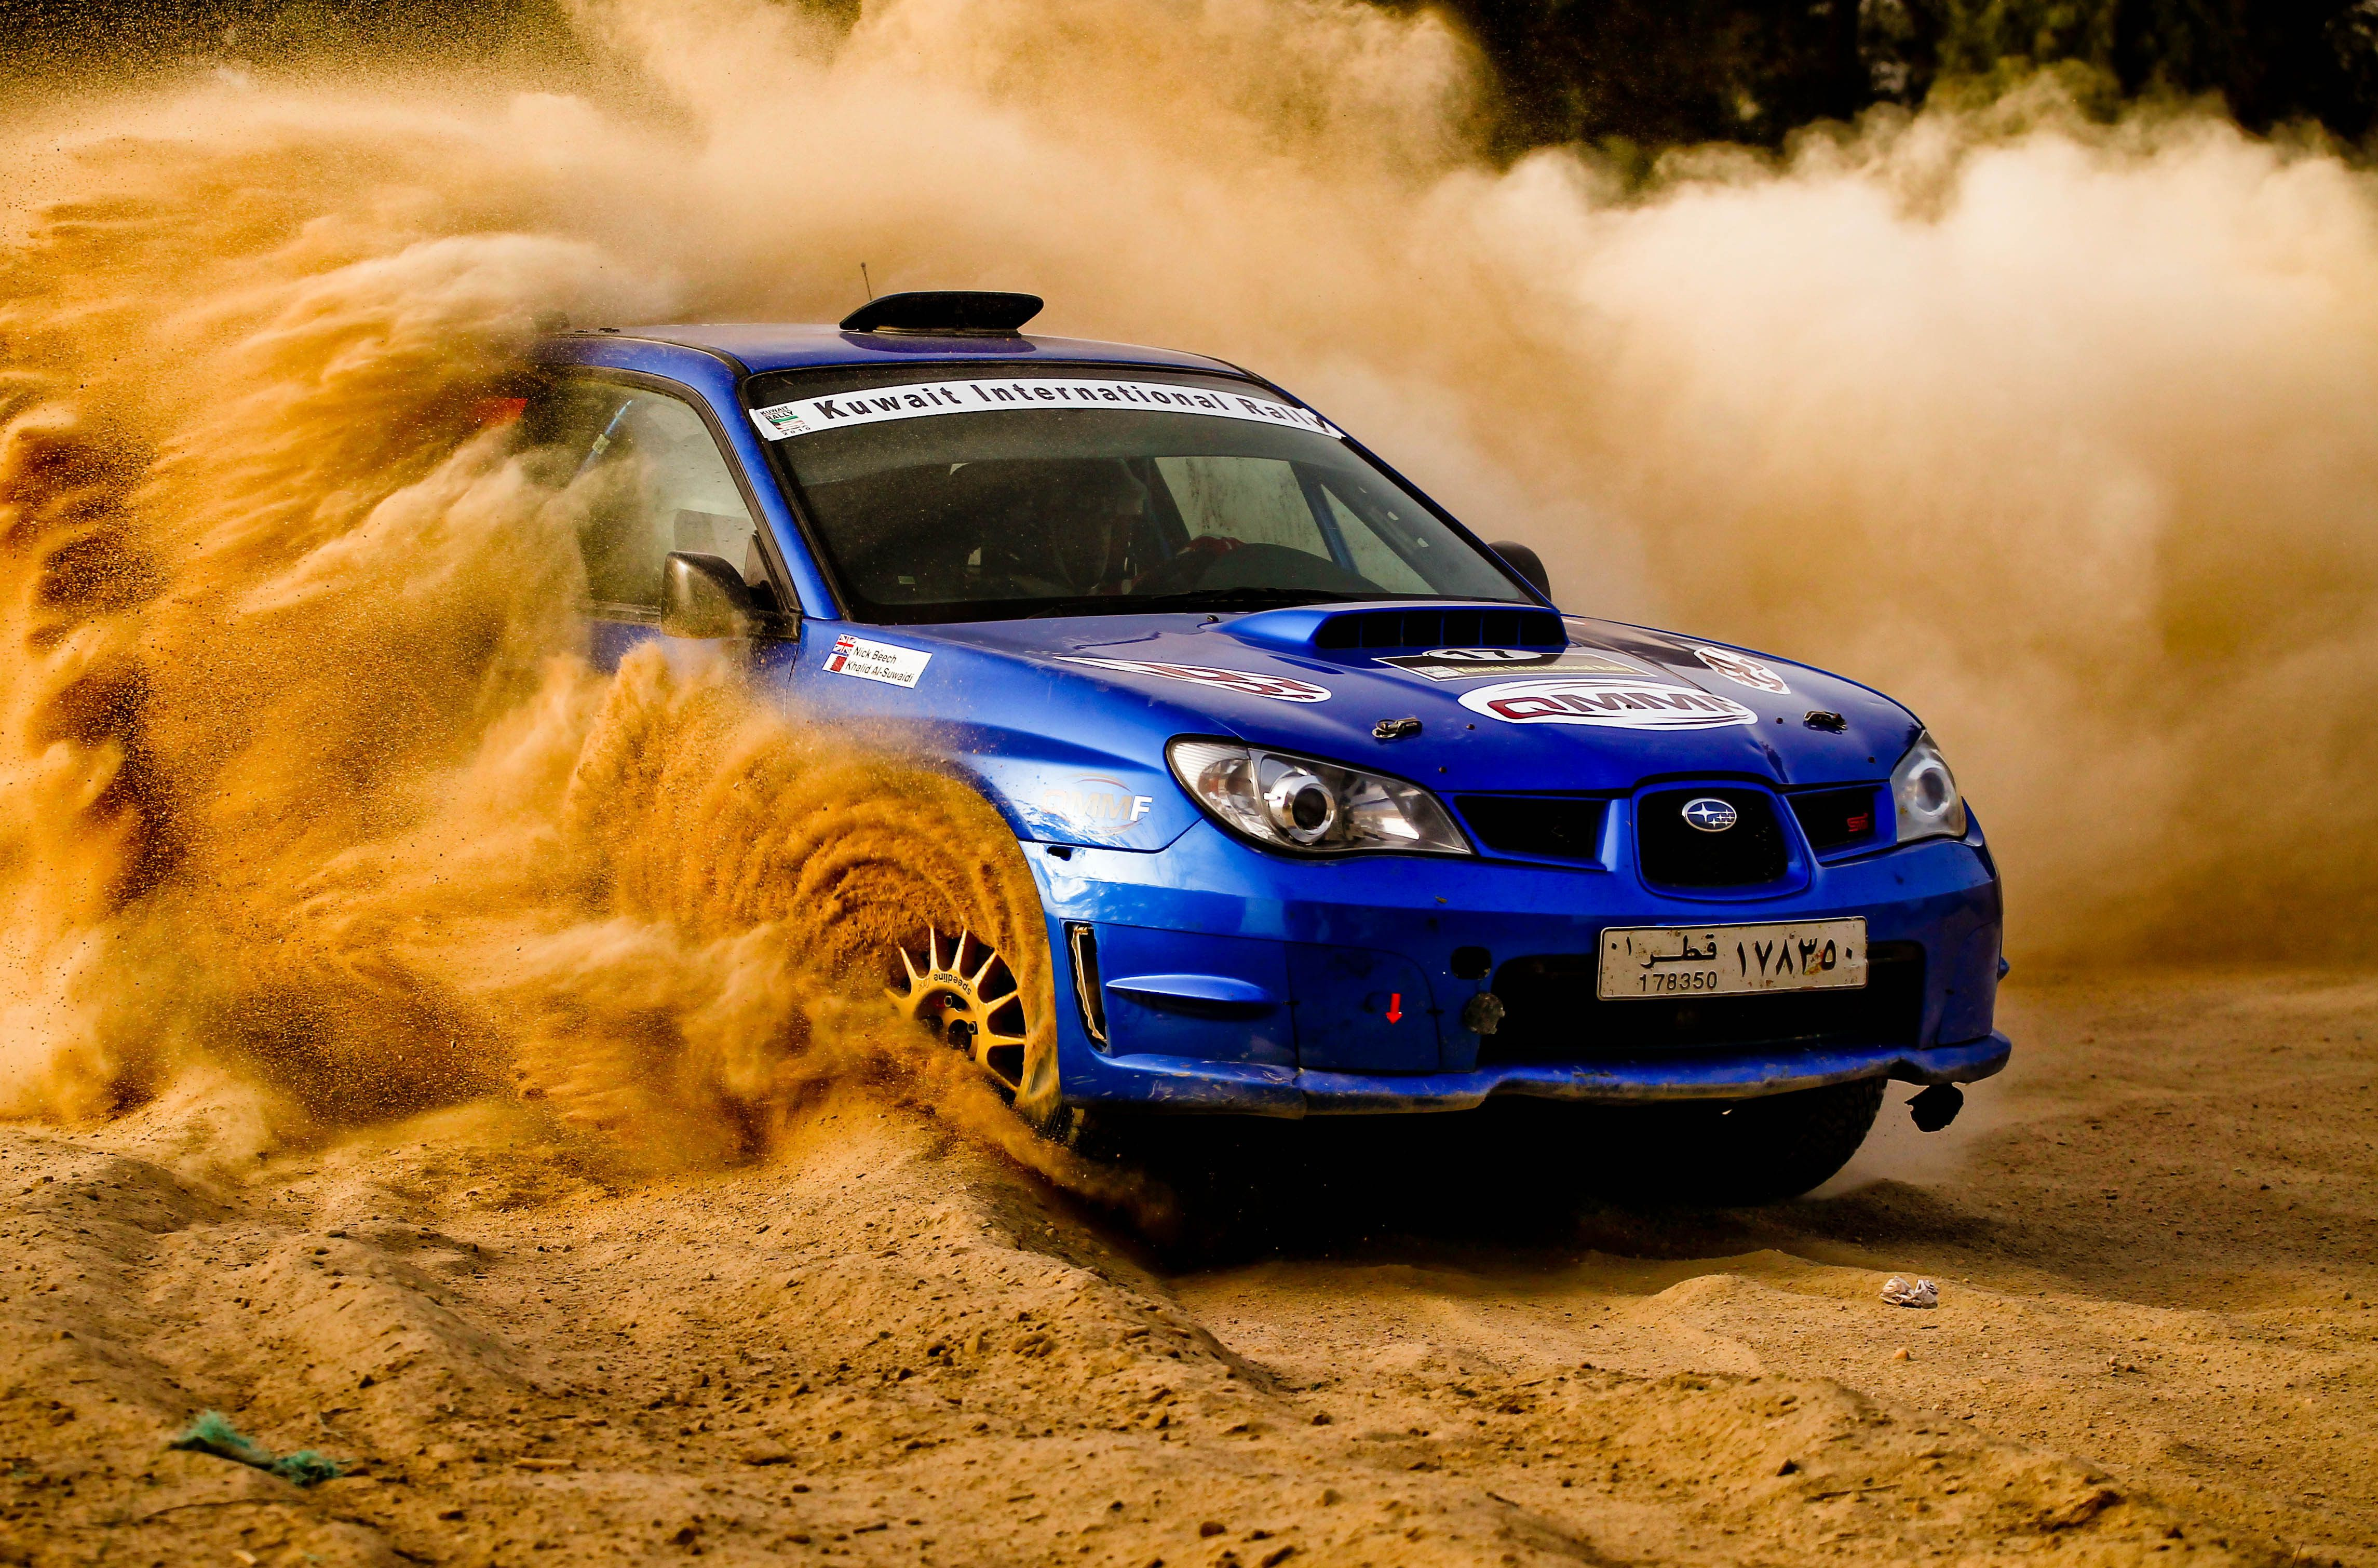 Subaru wrx sti rally love how you can see the dirt spinning off the wheels